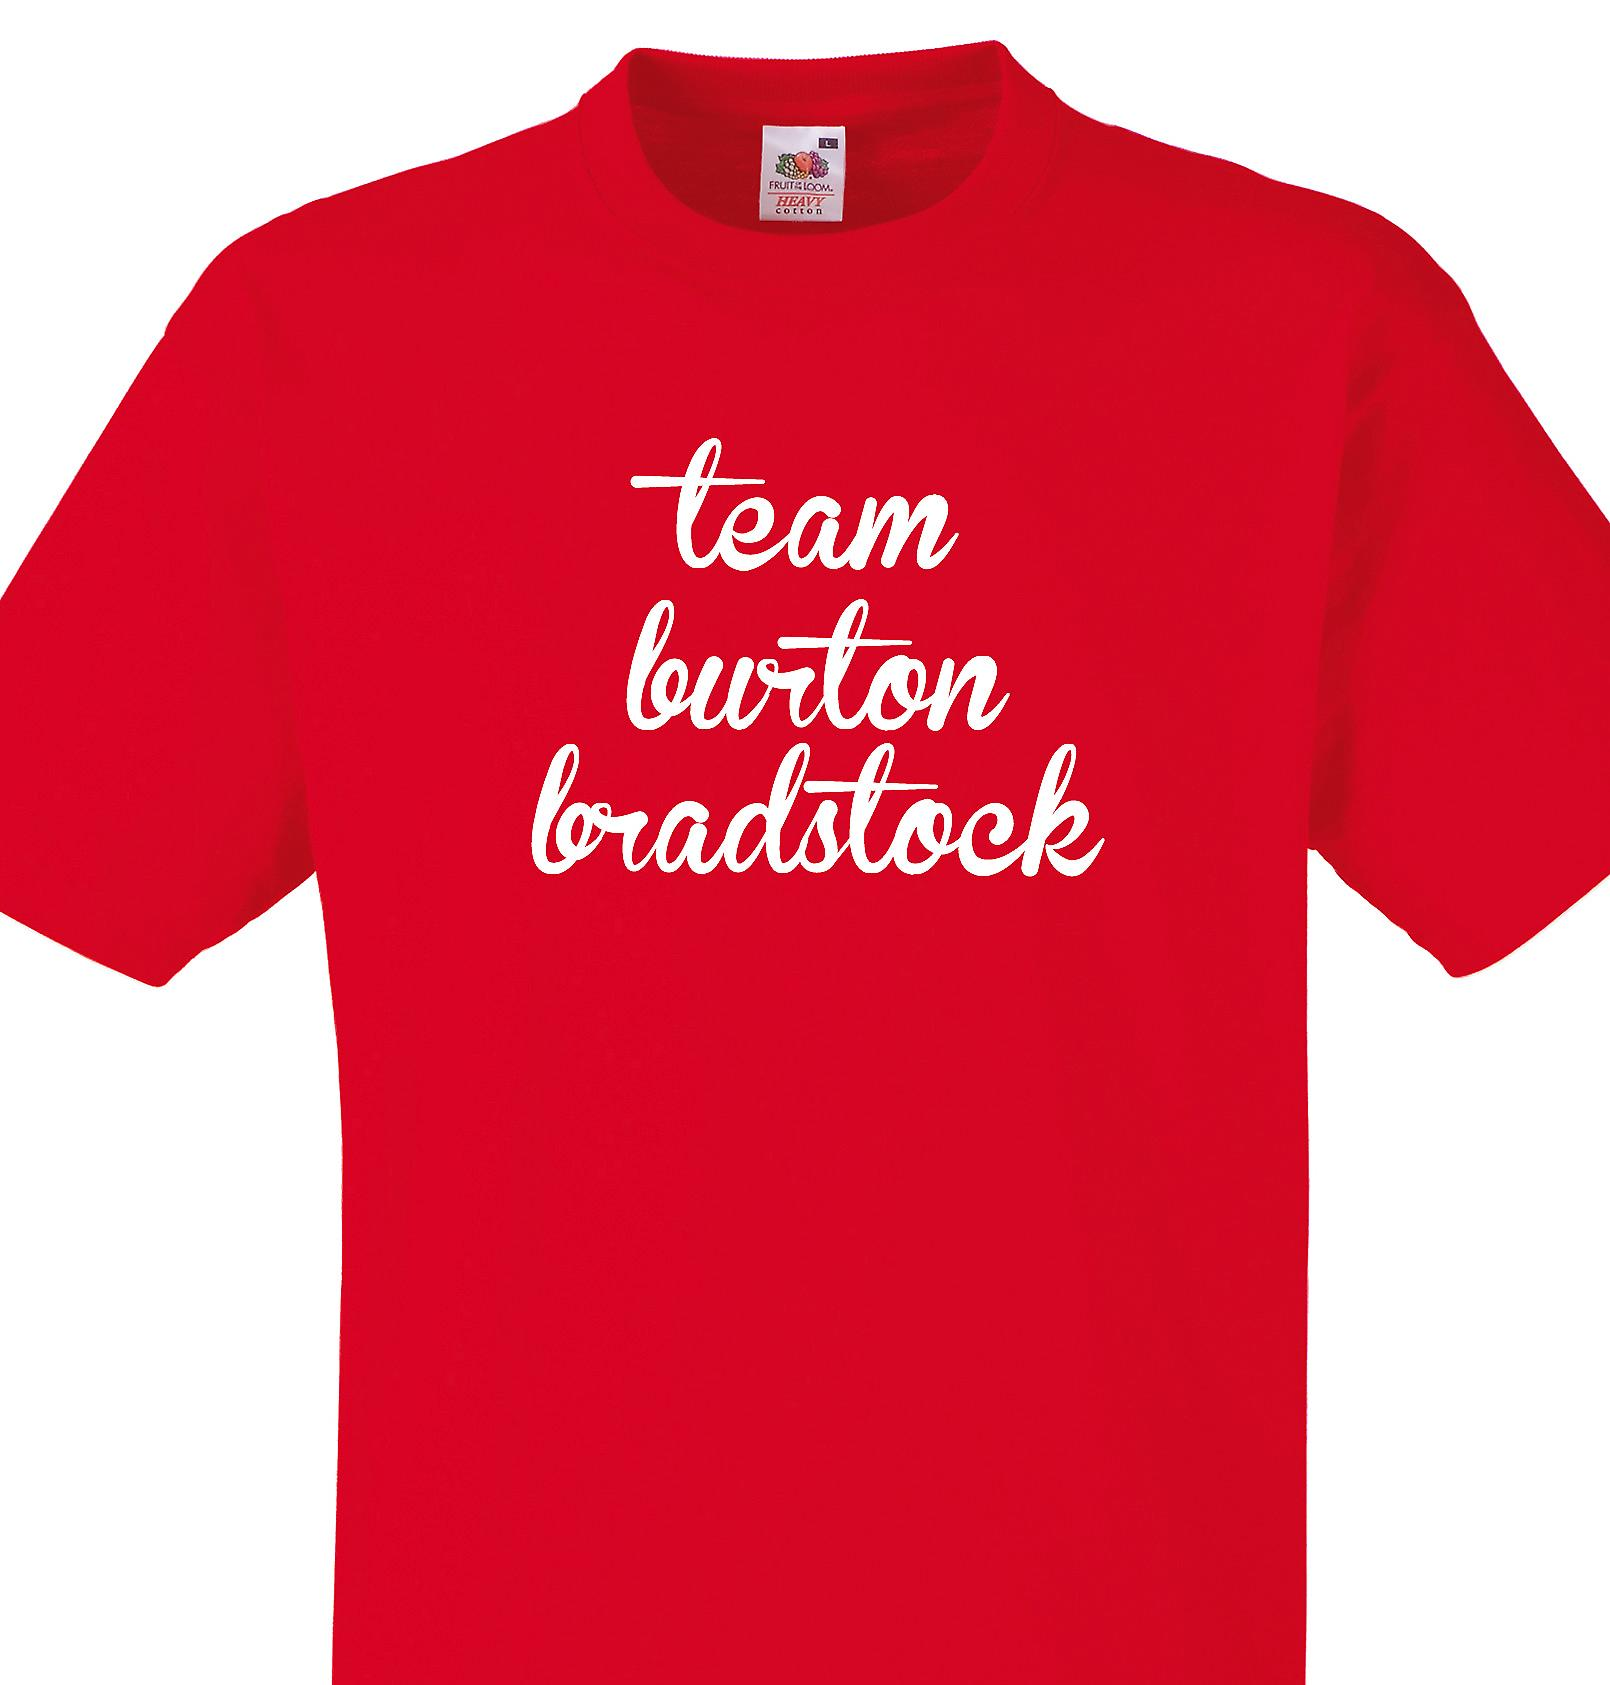 Team Burton bradstock Red T shirt